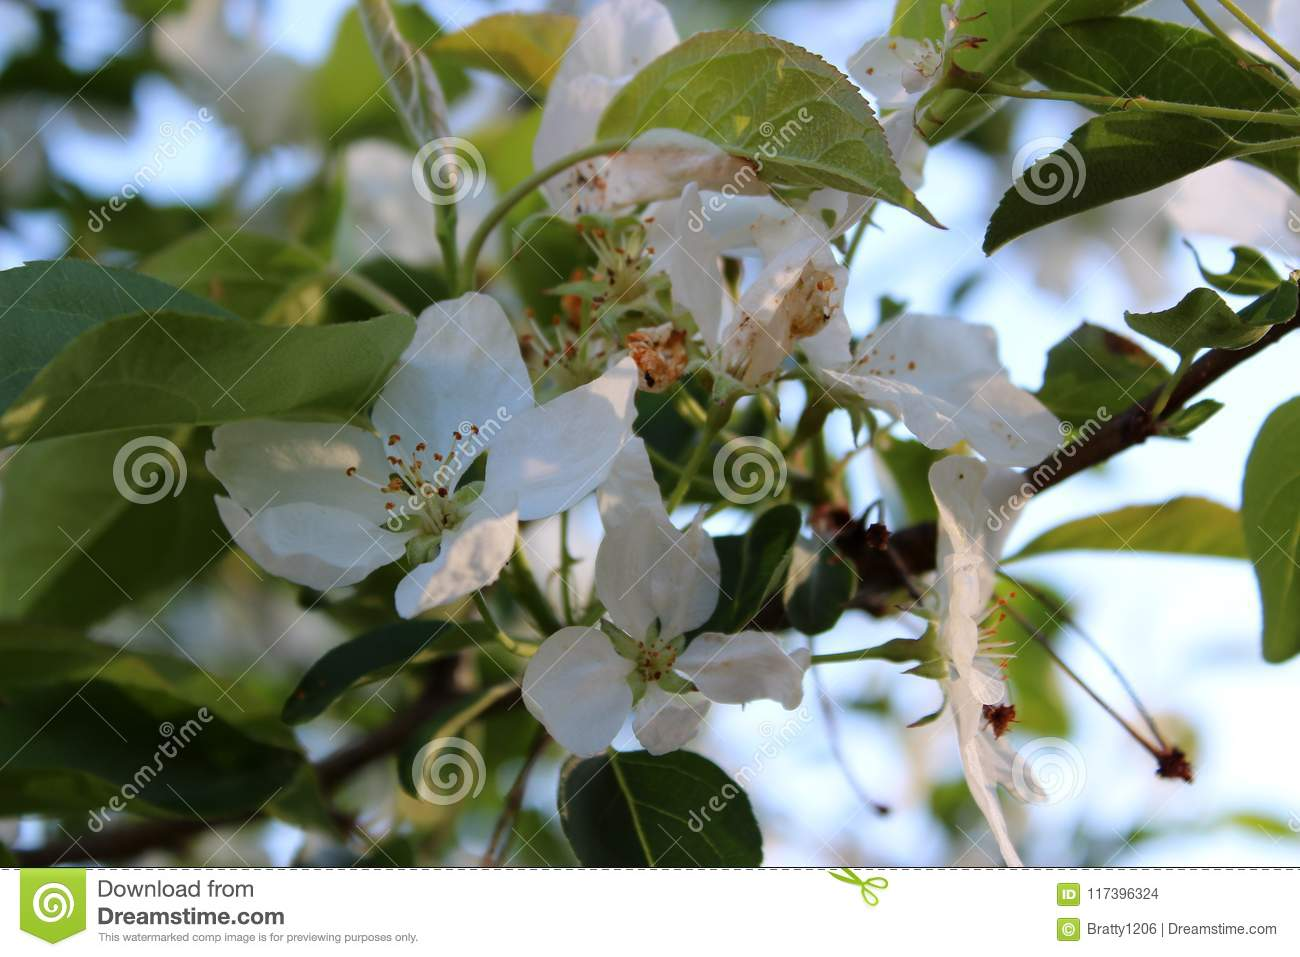 Apple tree branches in sun and shade, covered with blossoms